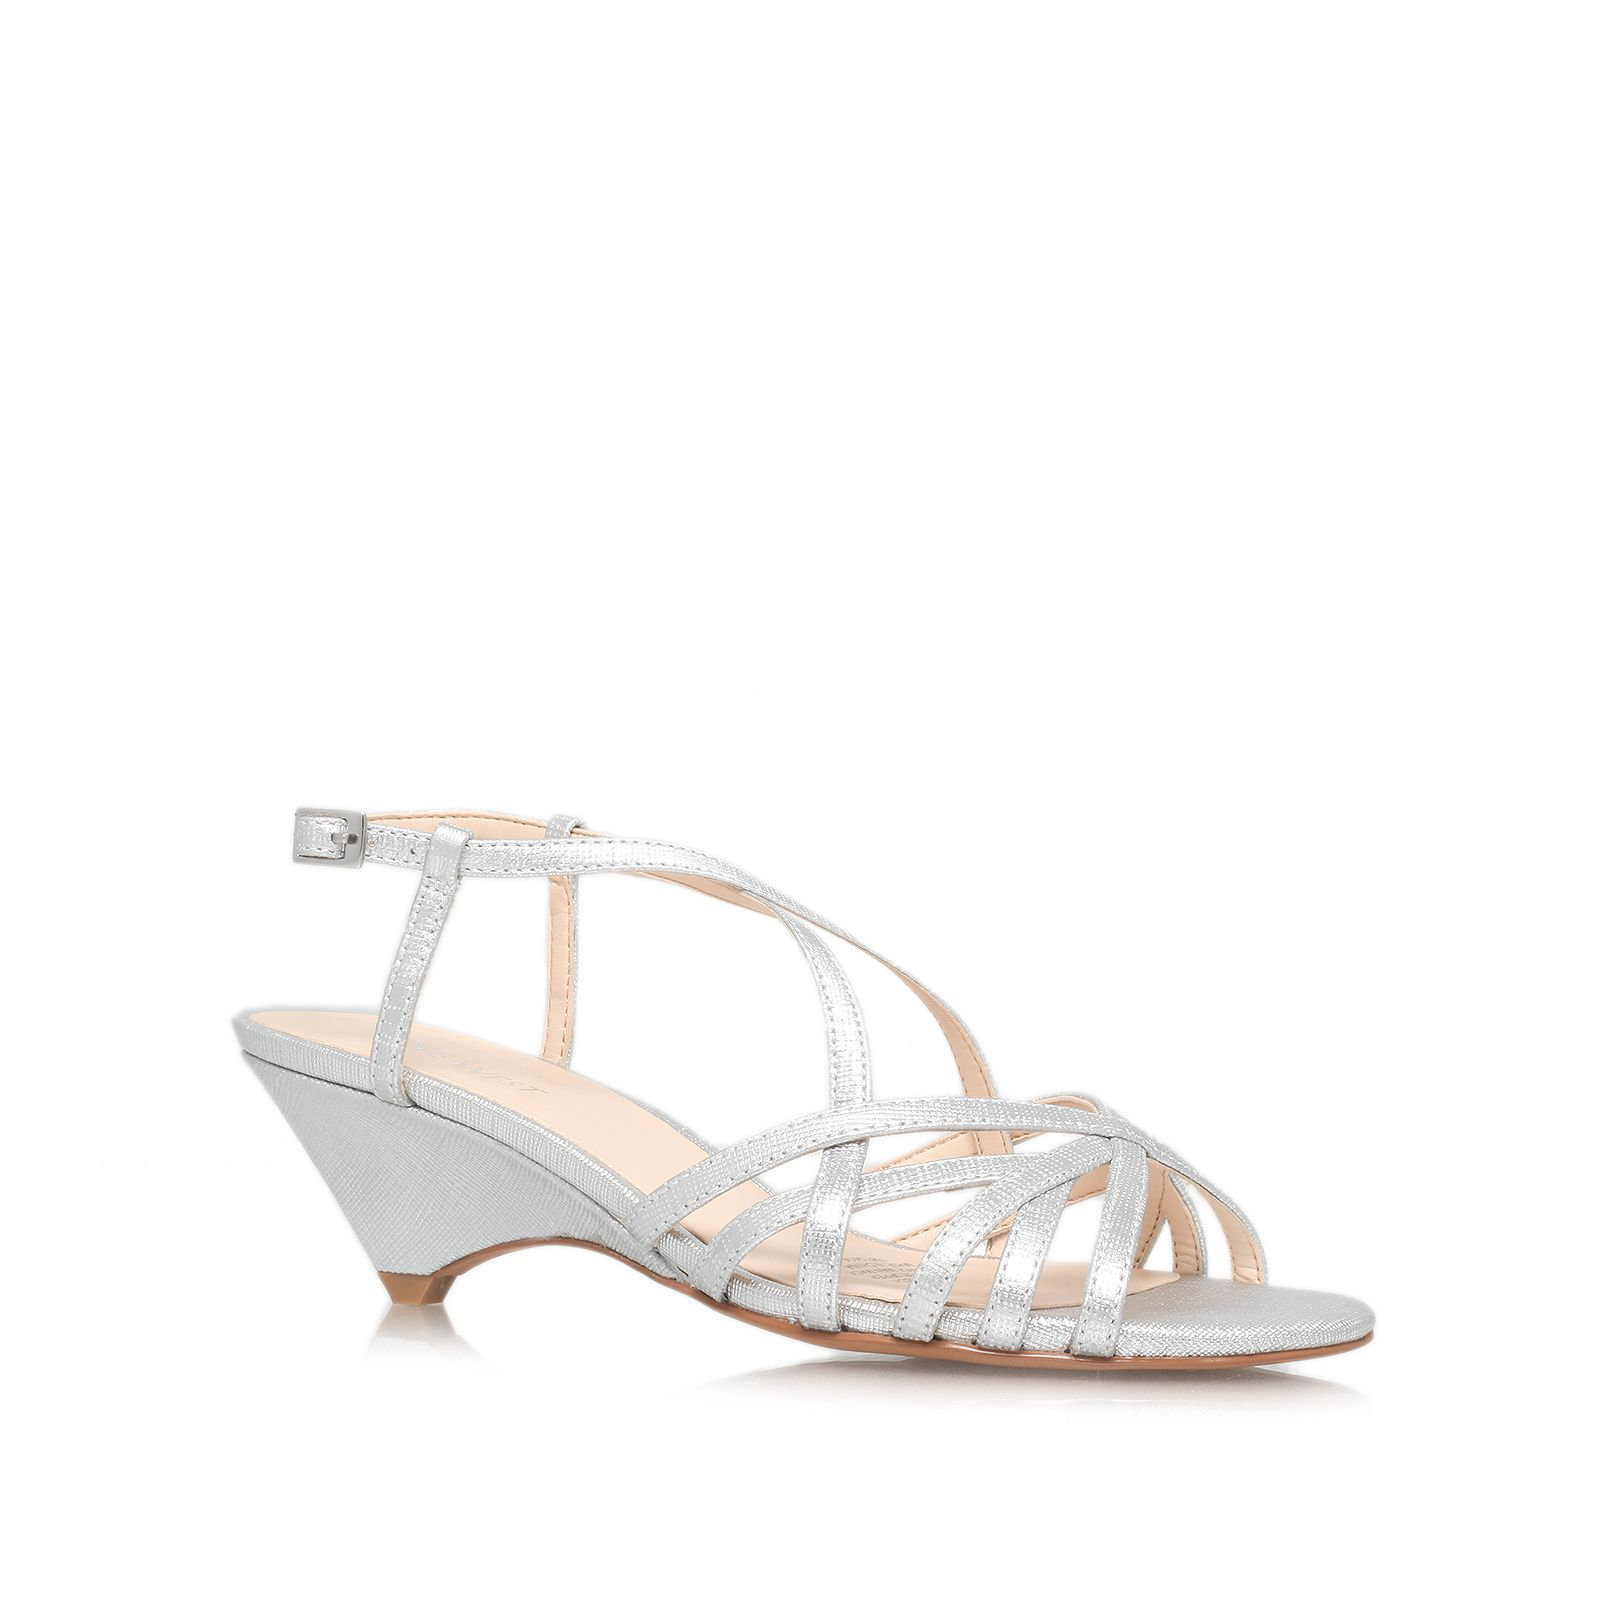 Beseech low heel sandals